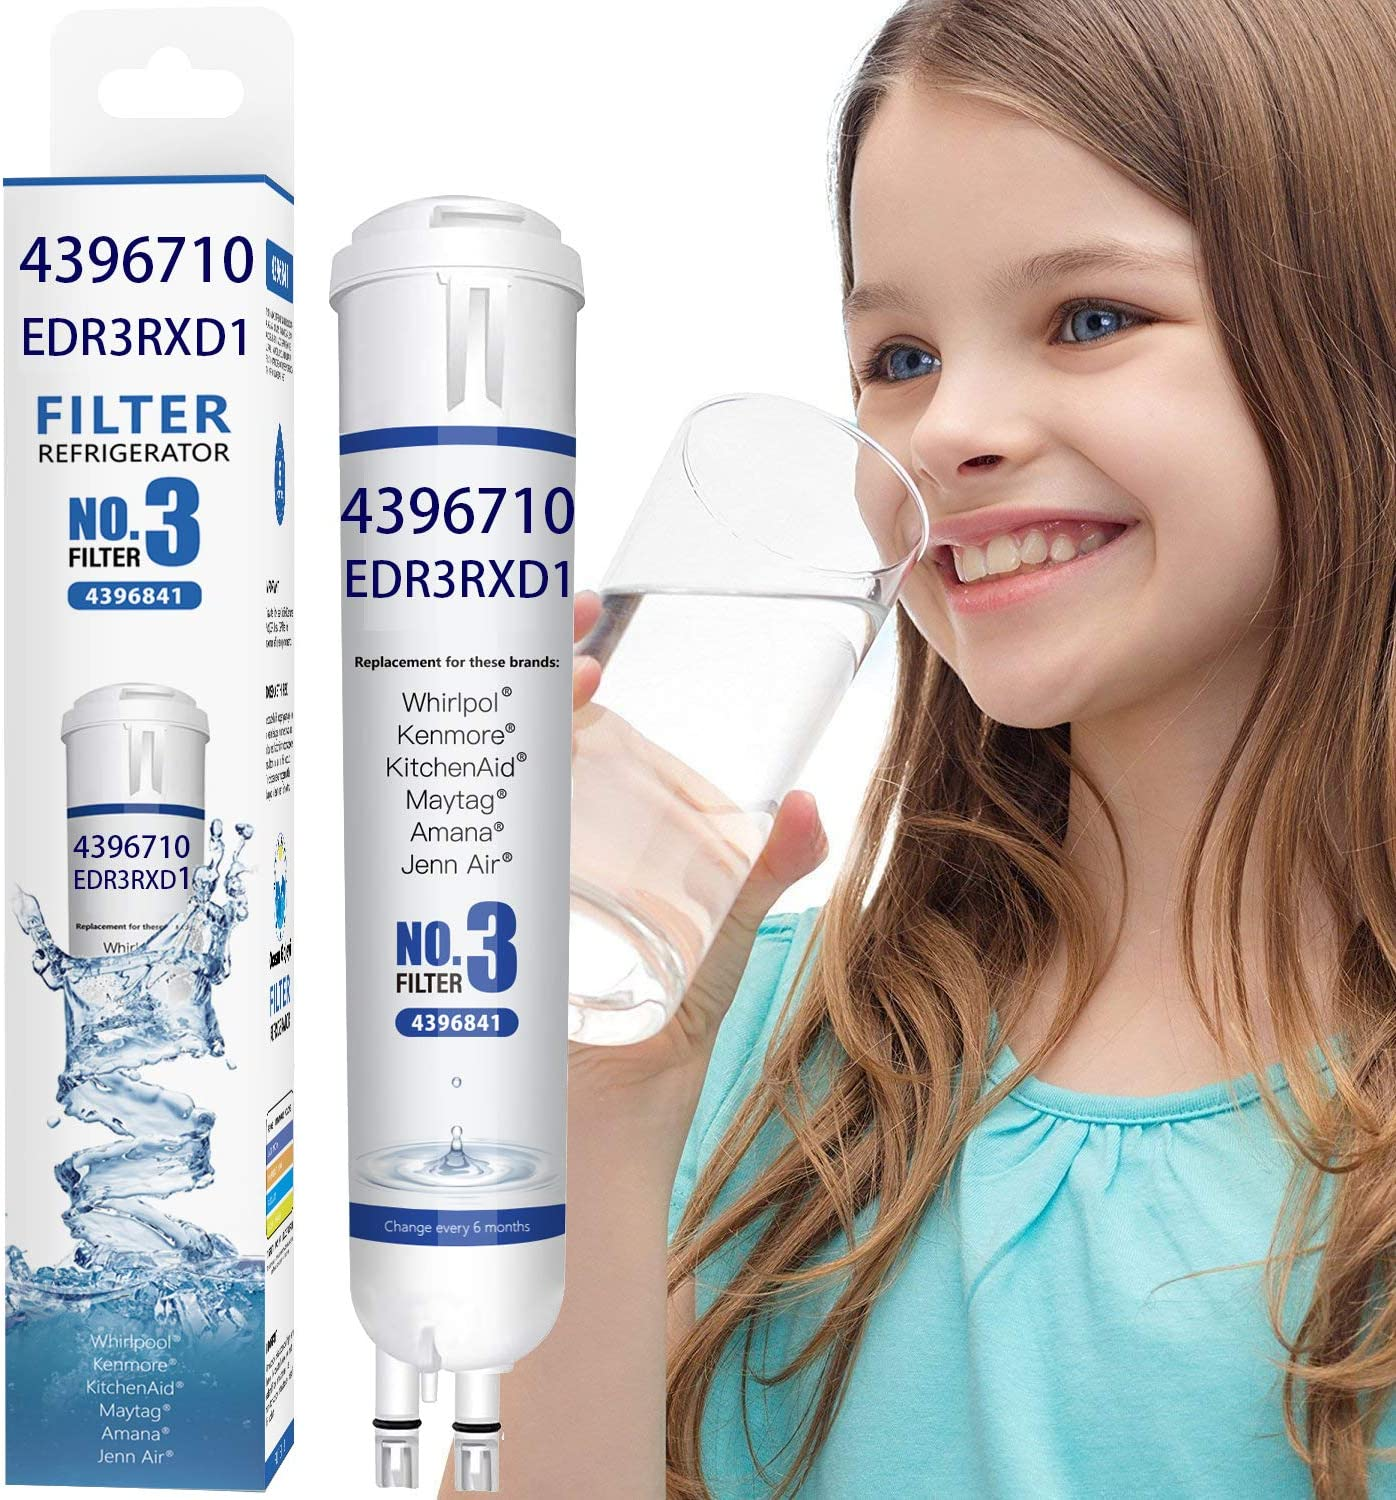 Ocean 9083 Rеfrigerator Wаter Filtеr Replacement for Kenmore Refrigerator Water Filter 46//9083 9083 46//9030 9030 2 Pcs,Packaging May Vary